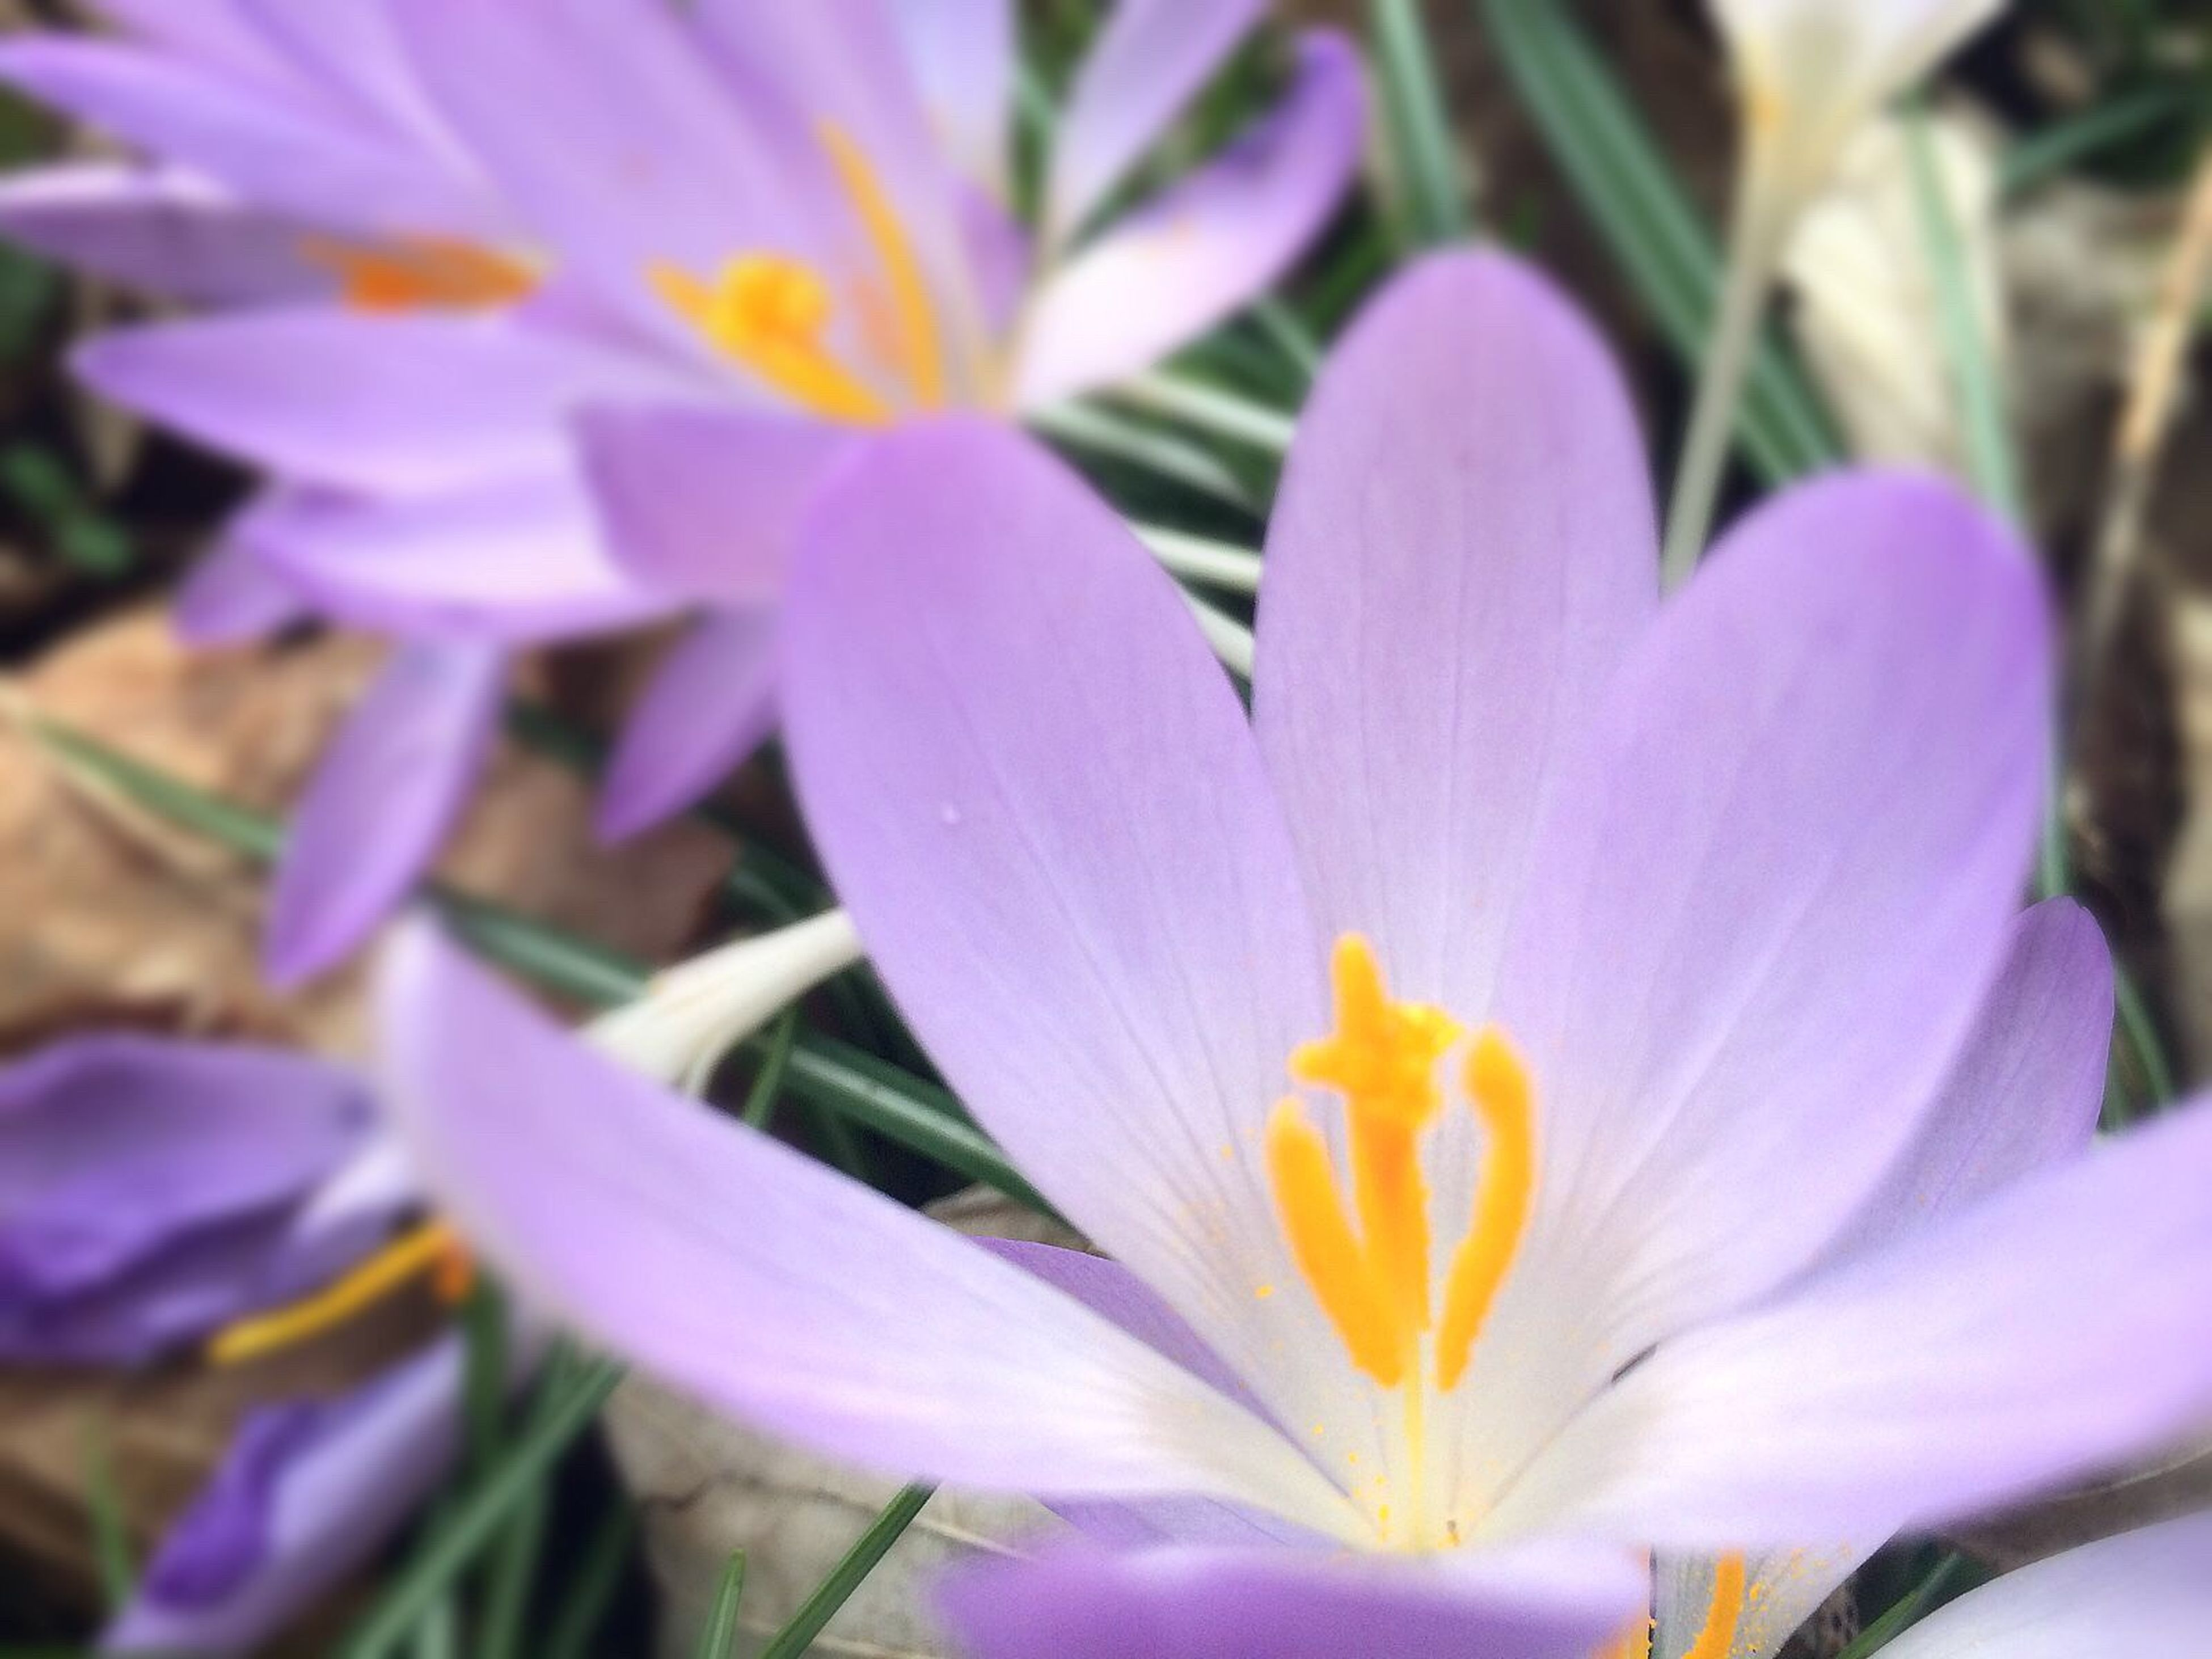 flower, petal, freshness, flower head, fragility, beauty in nature, purple, growth, close-up, blooming, pollen, nature, plant, stamen, in bloom, focus on foreground, pink color, yellow, selective focus, outdoors